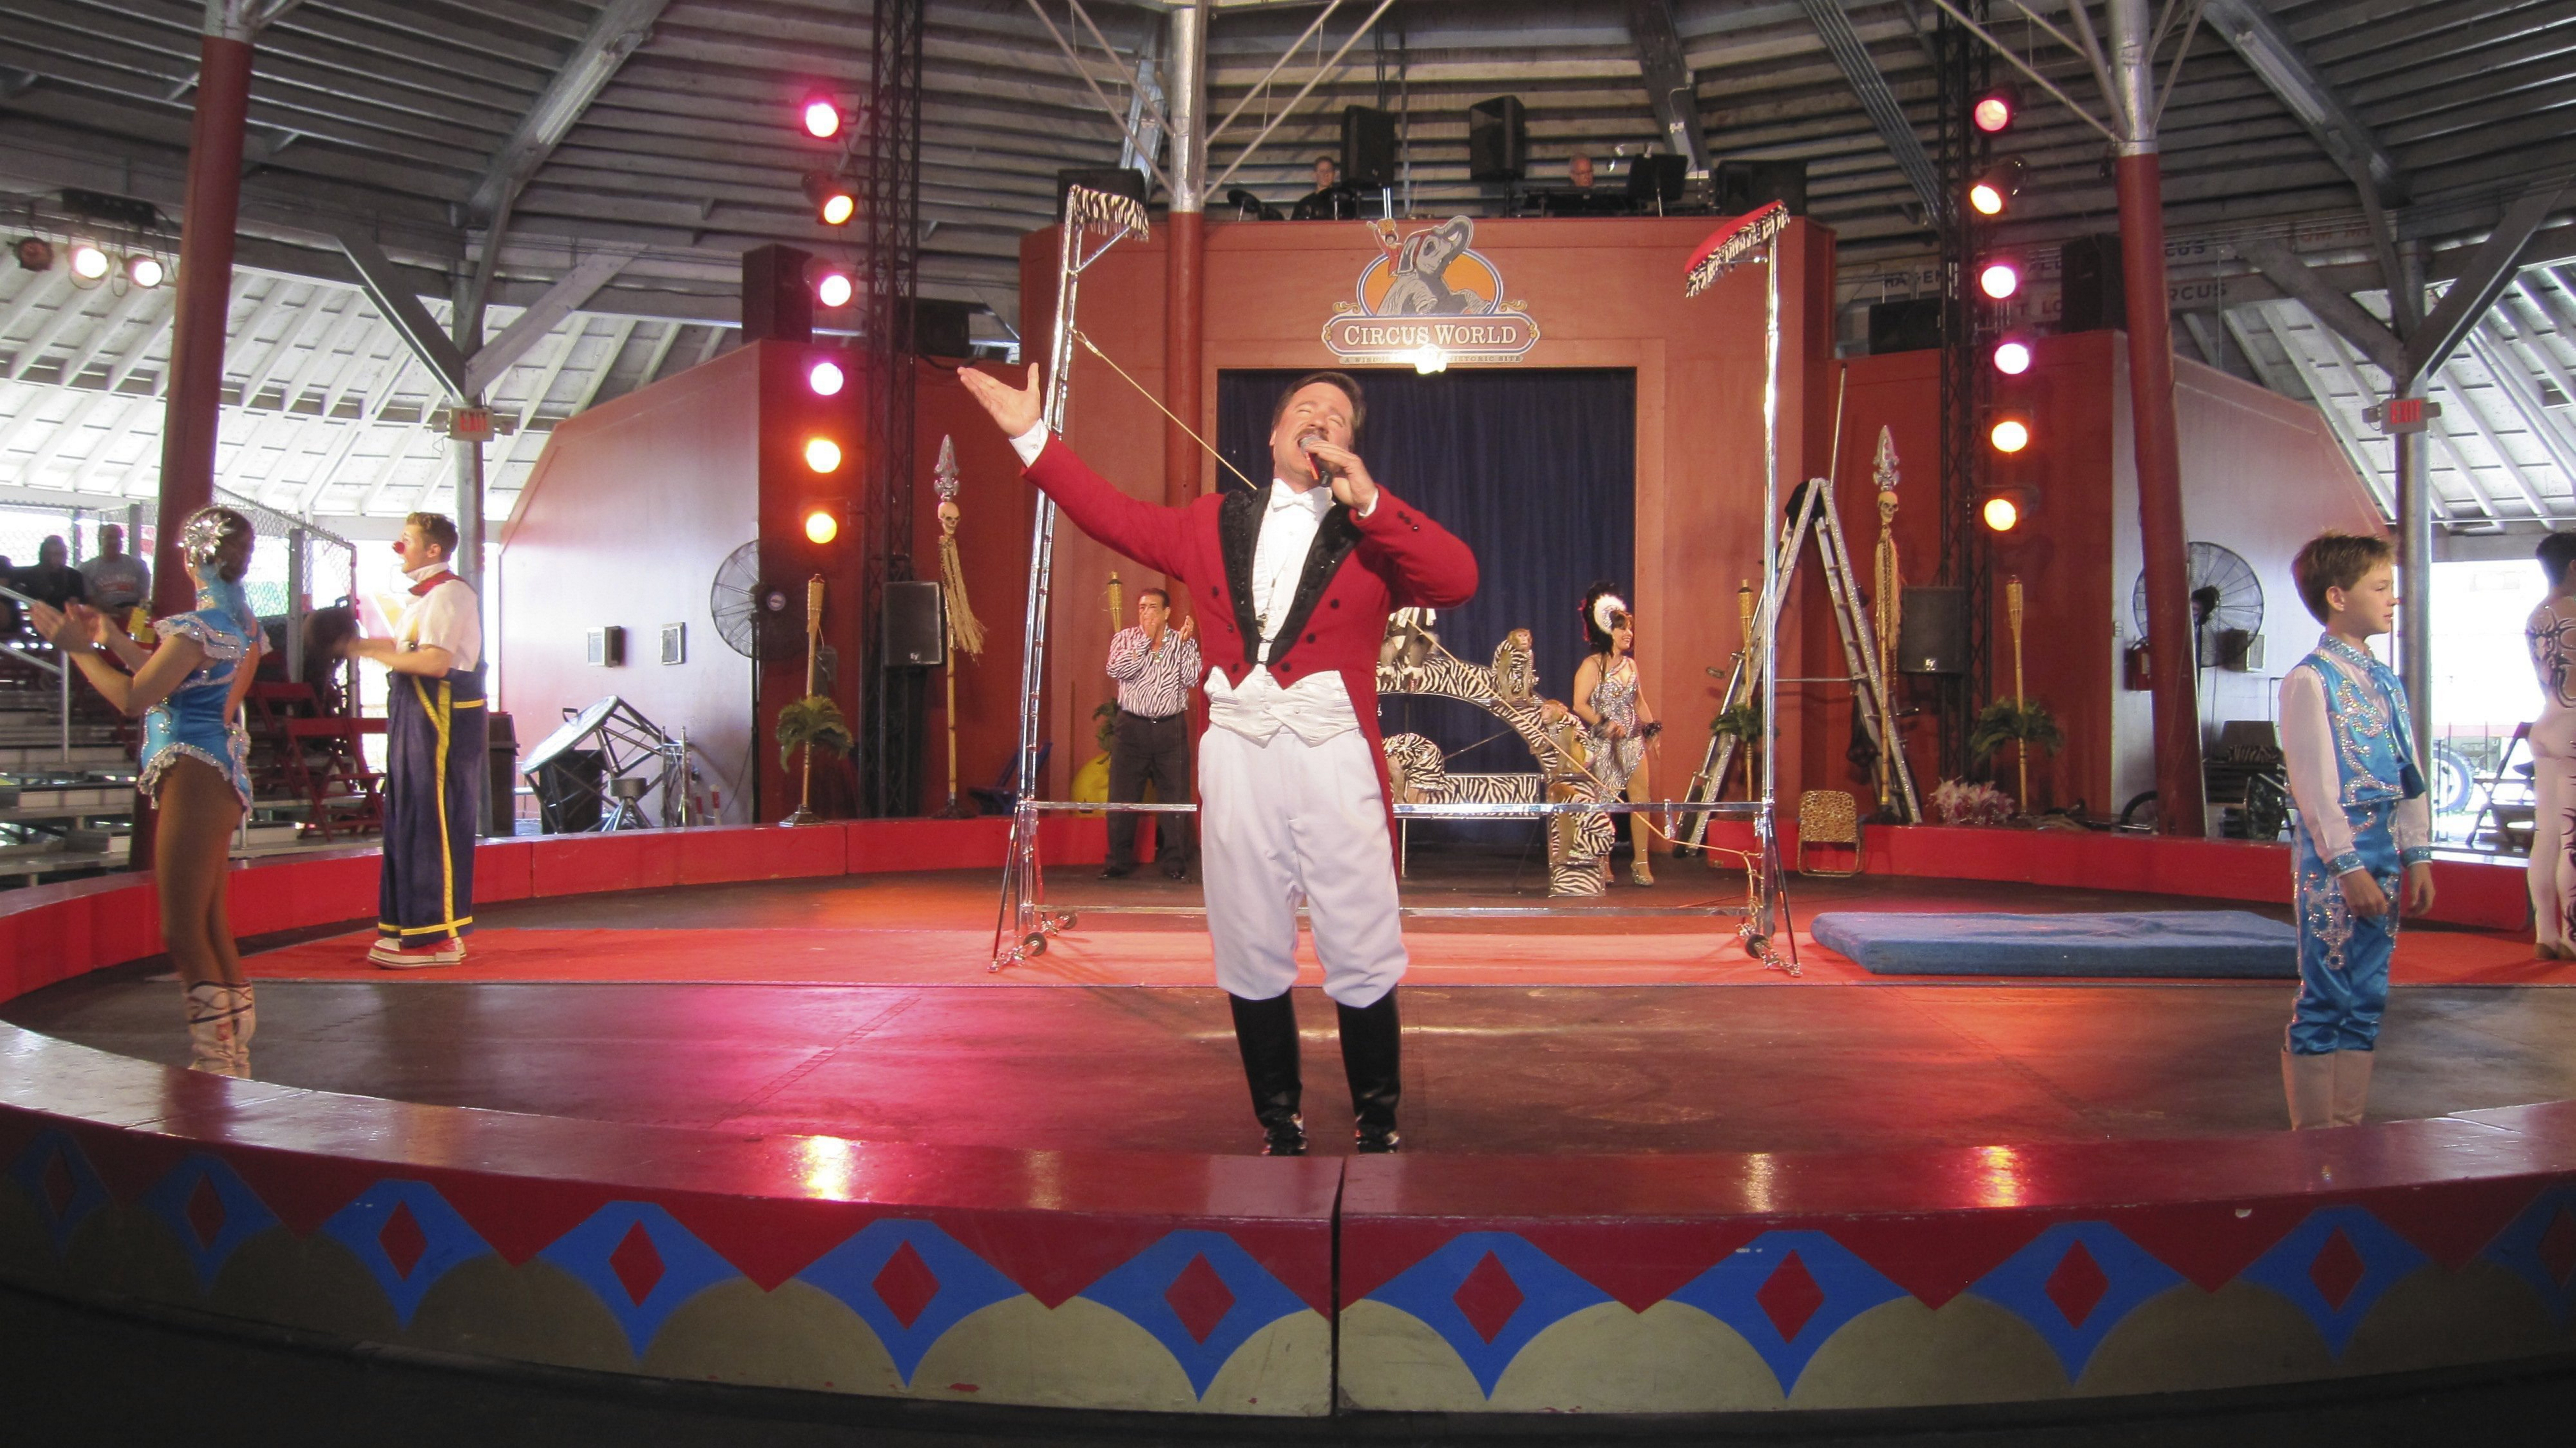 The big top show runs twice daily during summer at Circus World. (Josh Noel/Chicago Tribune/MCT)  i